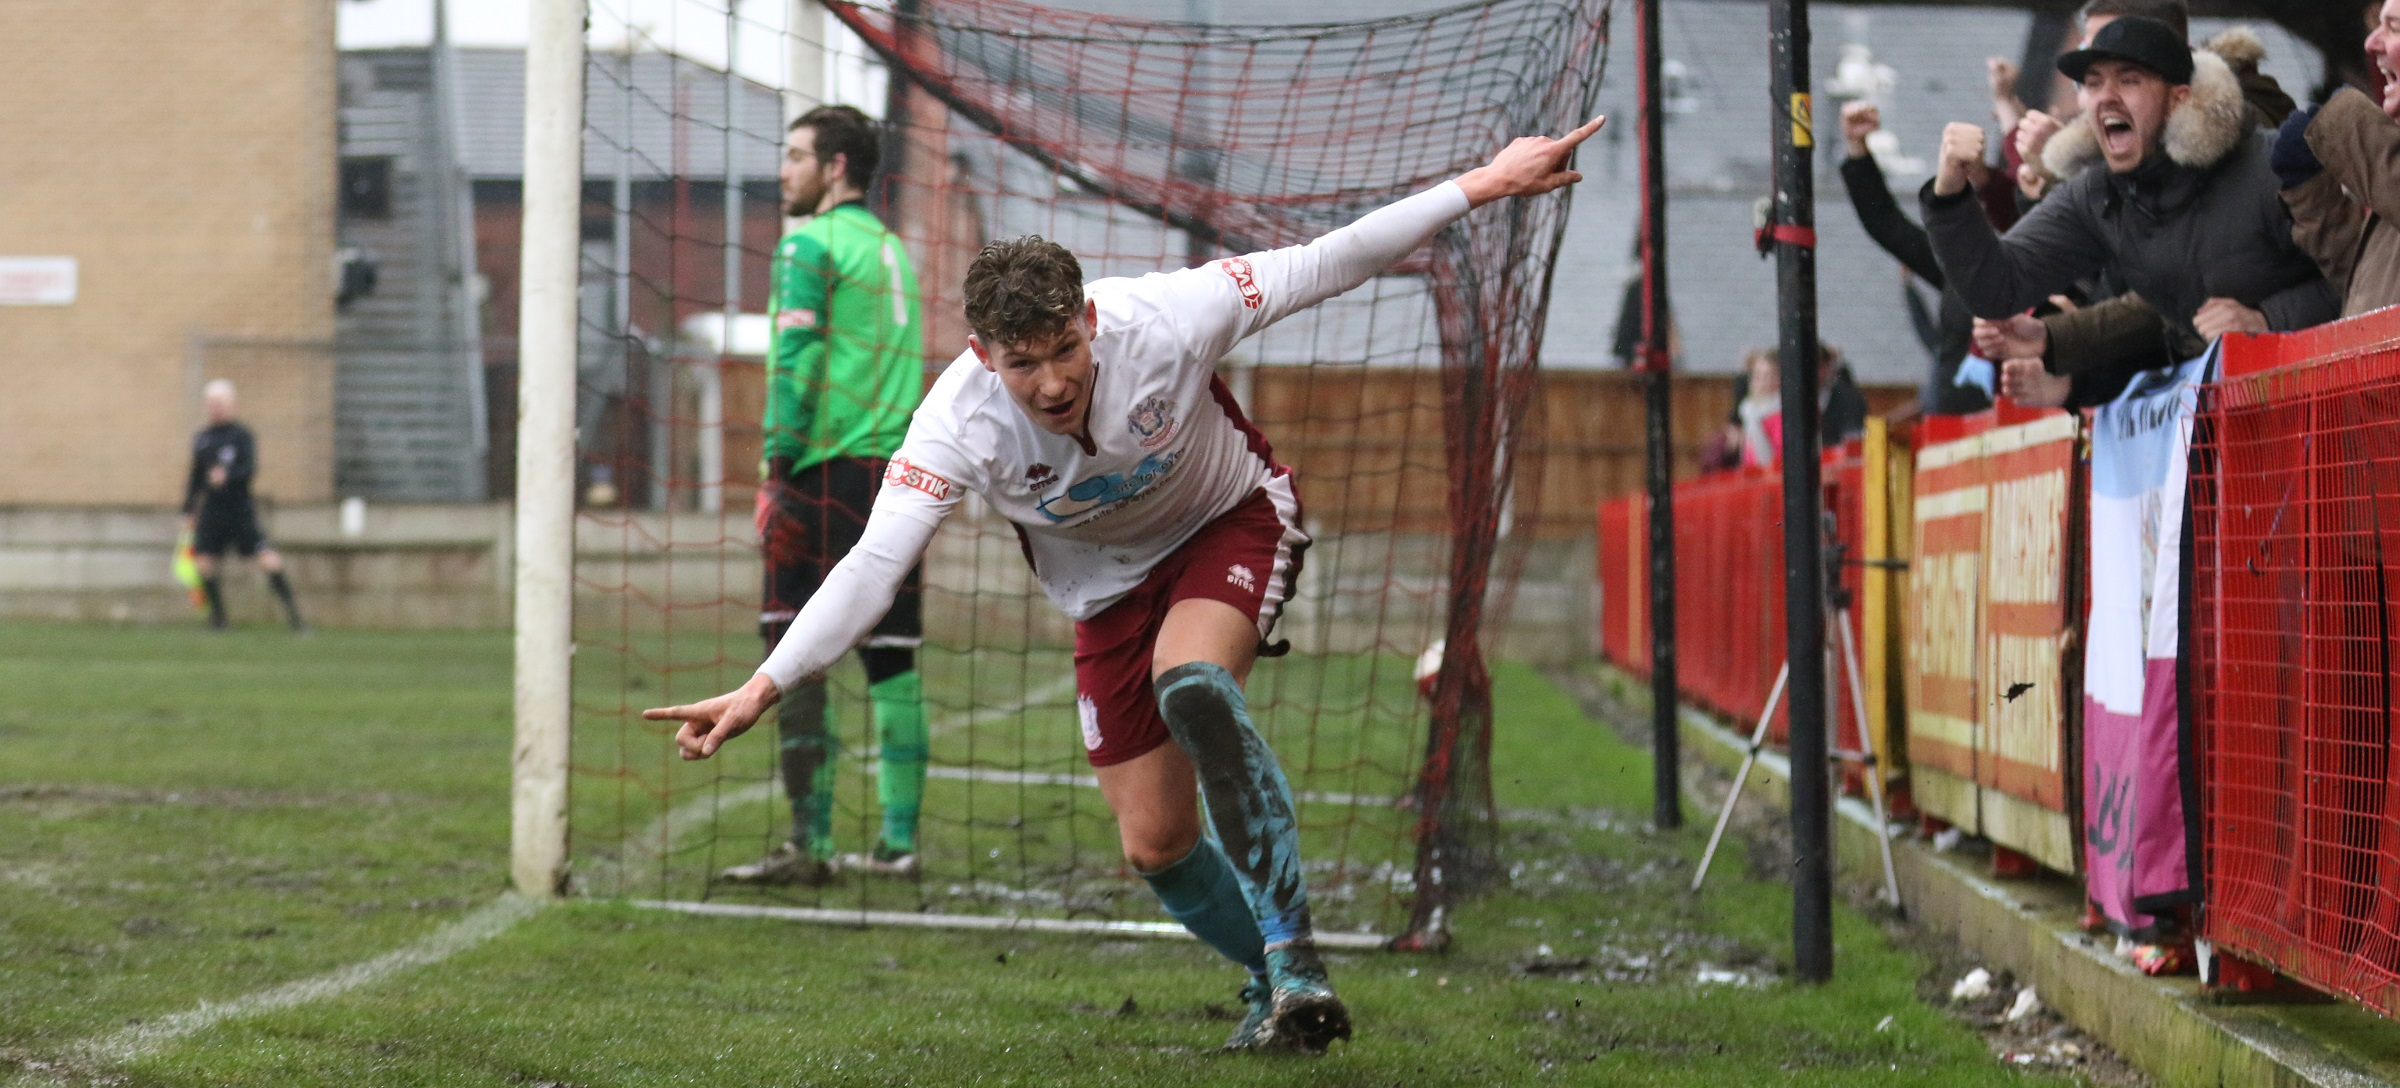 Droylsden vs South Shields